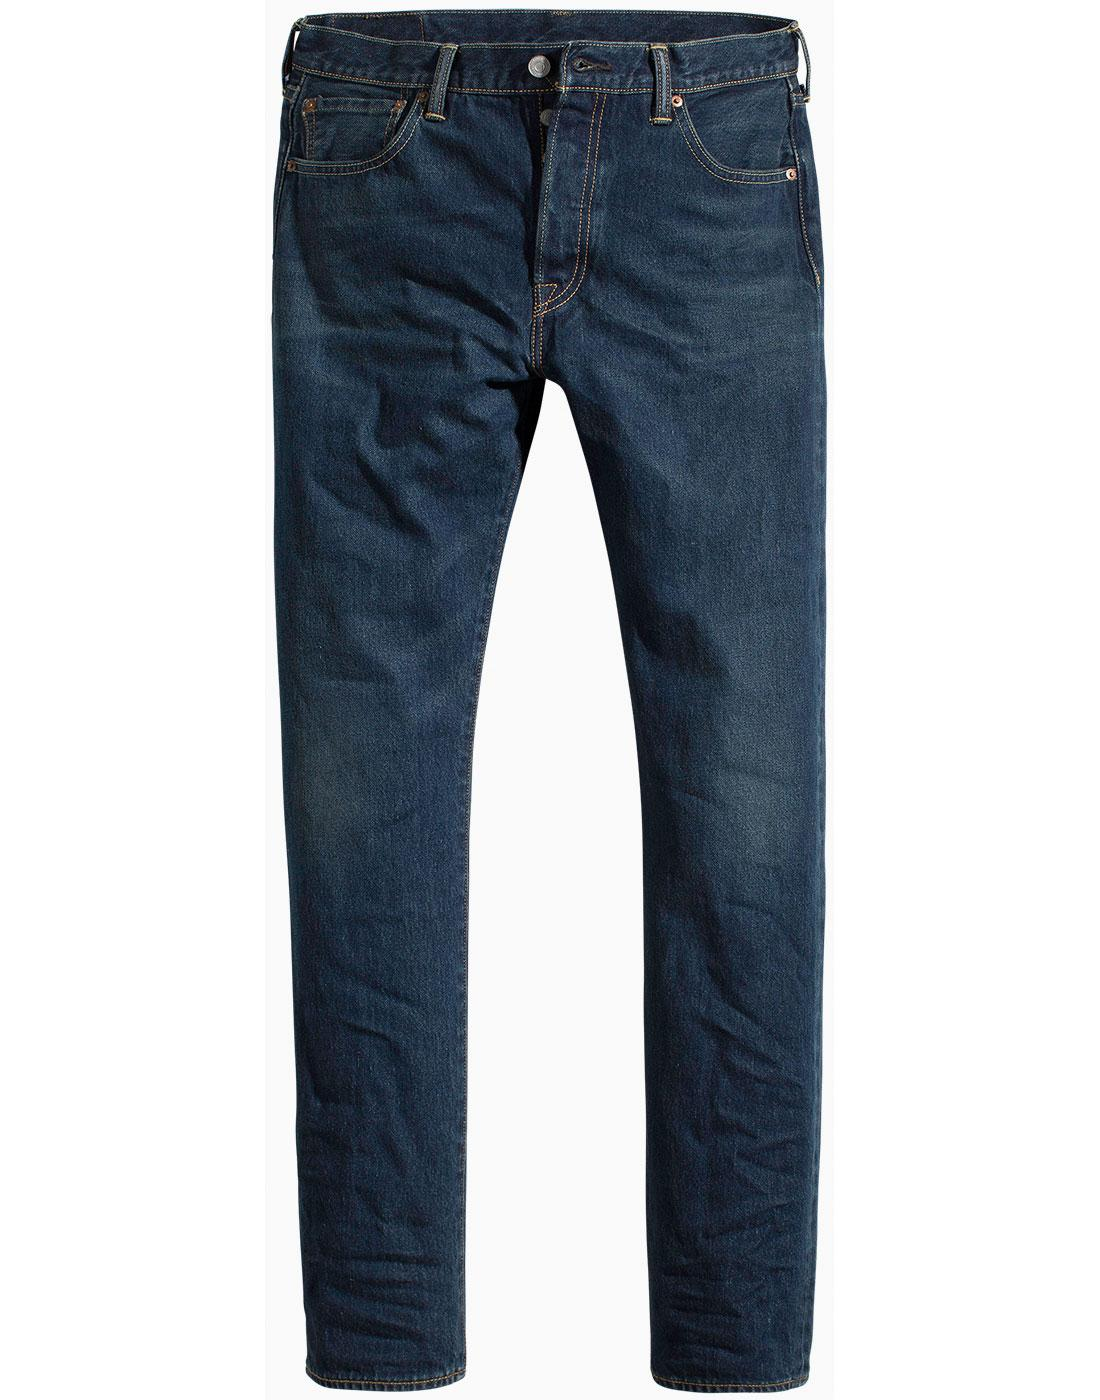 ccff27abae2fe LEVI S 501 Retro 60s Mod Original Fit Straight Jeans Canal Street